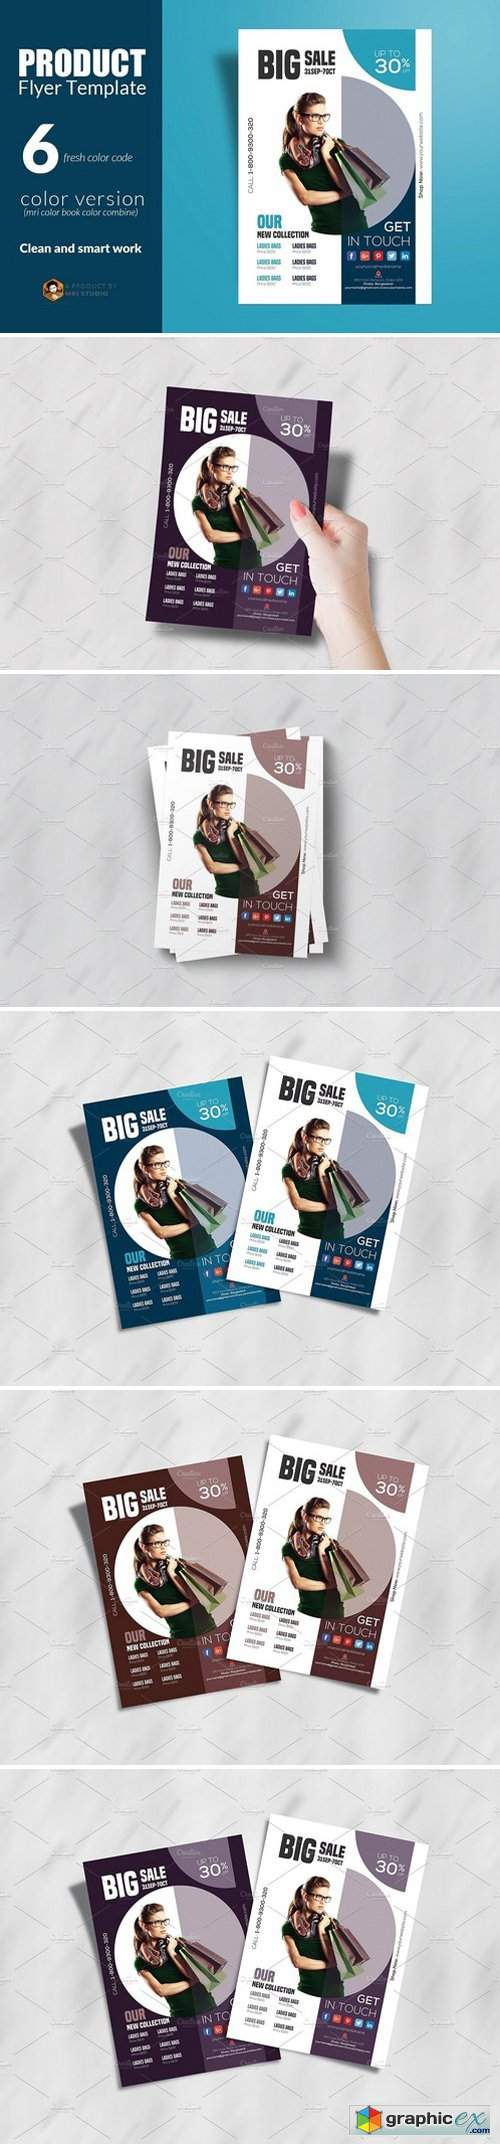 Product Flyer Template 1868879